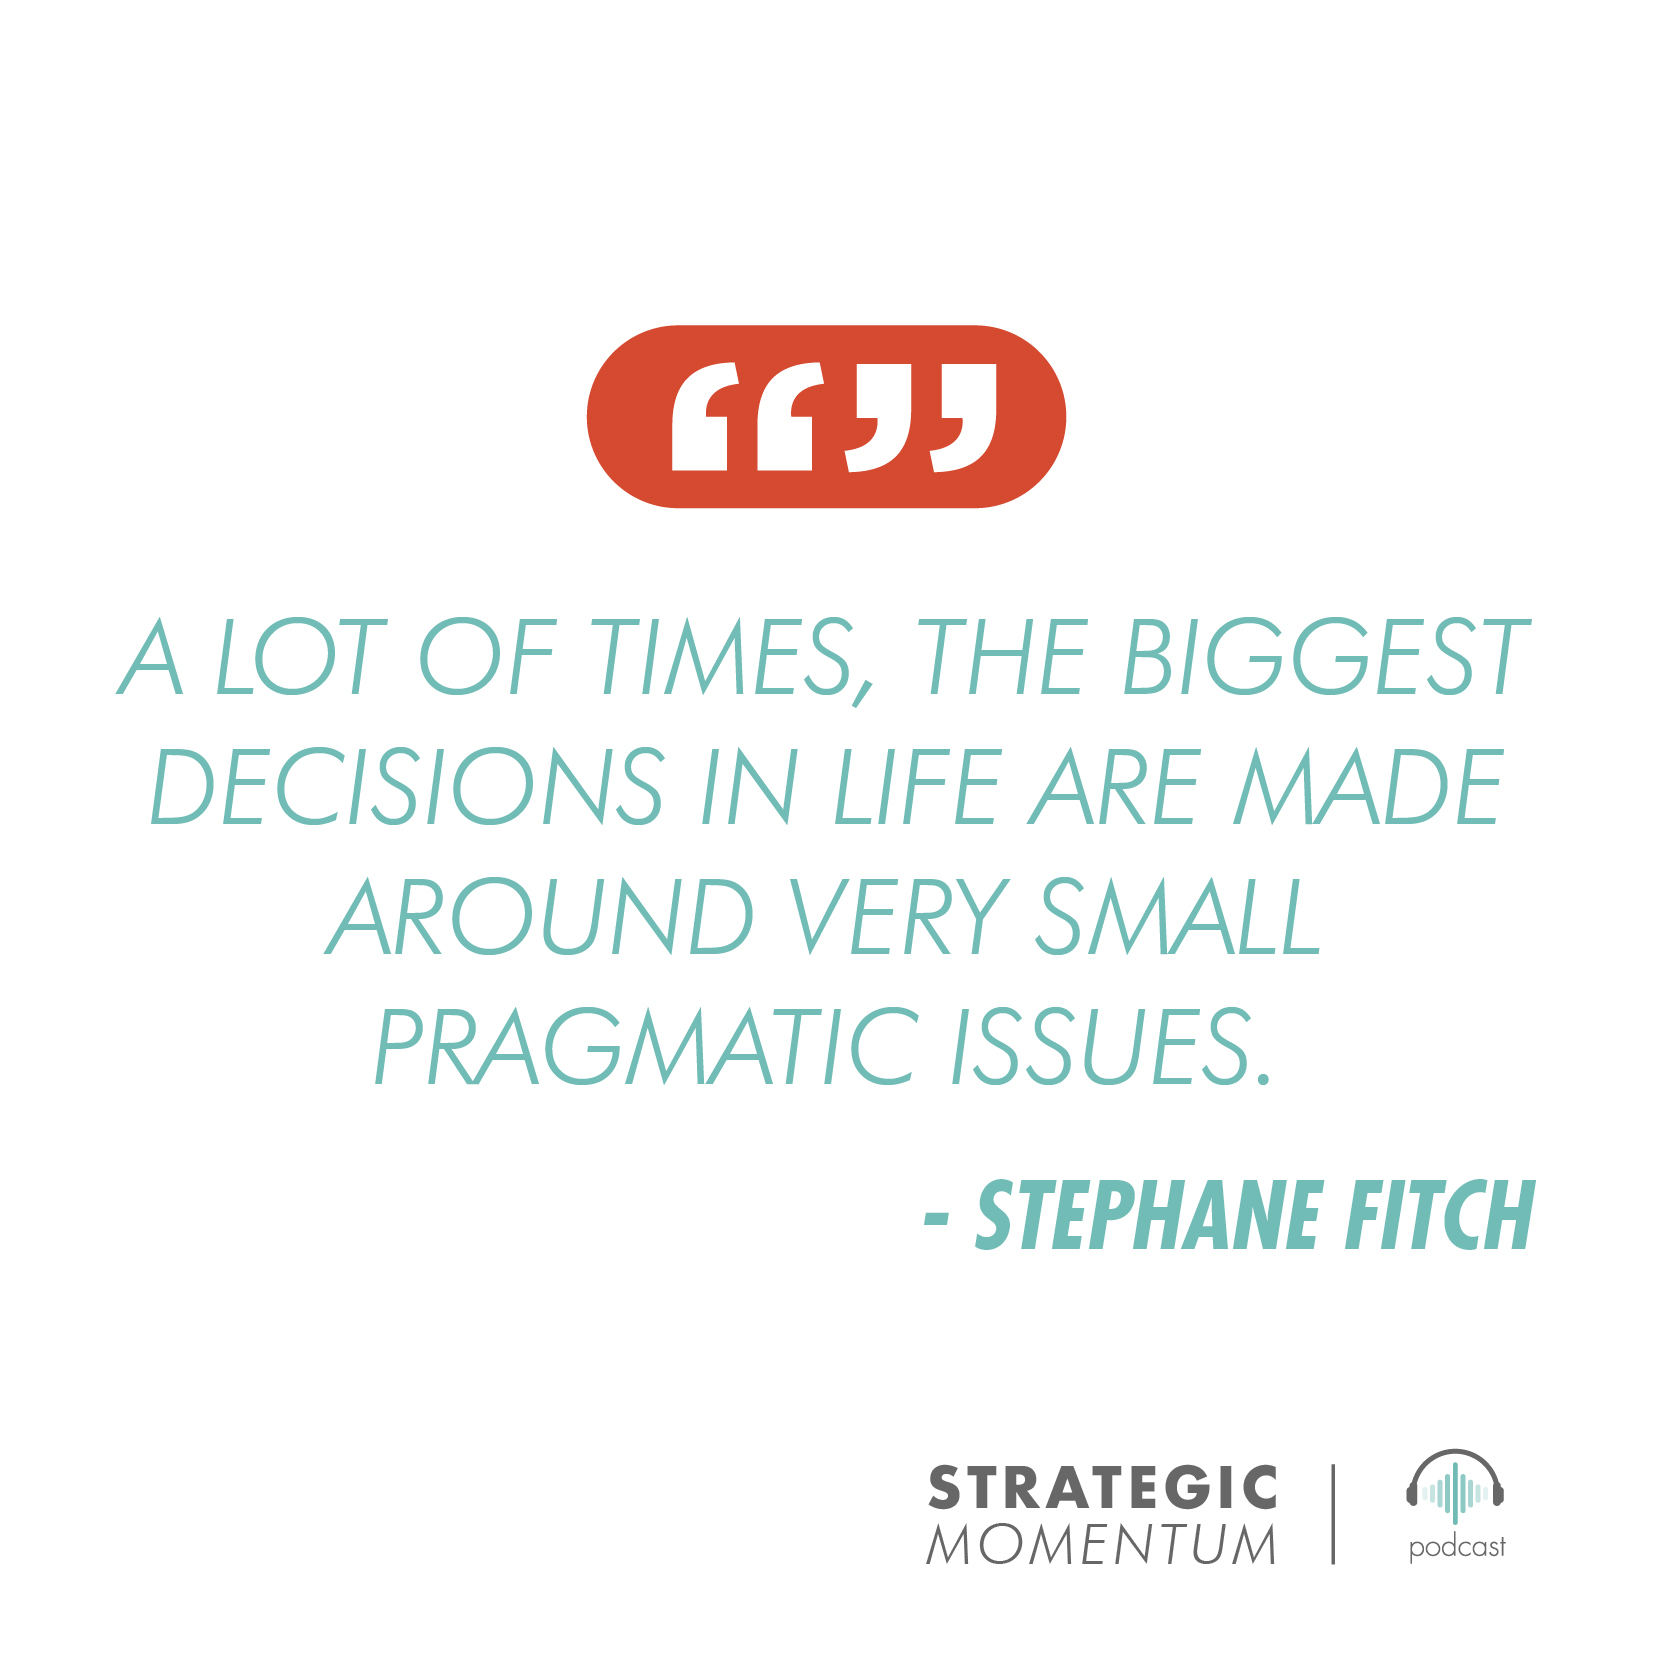 Stephane Fitch Quote | Strategic Momentum Podcast